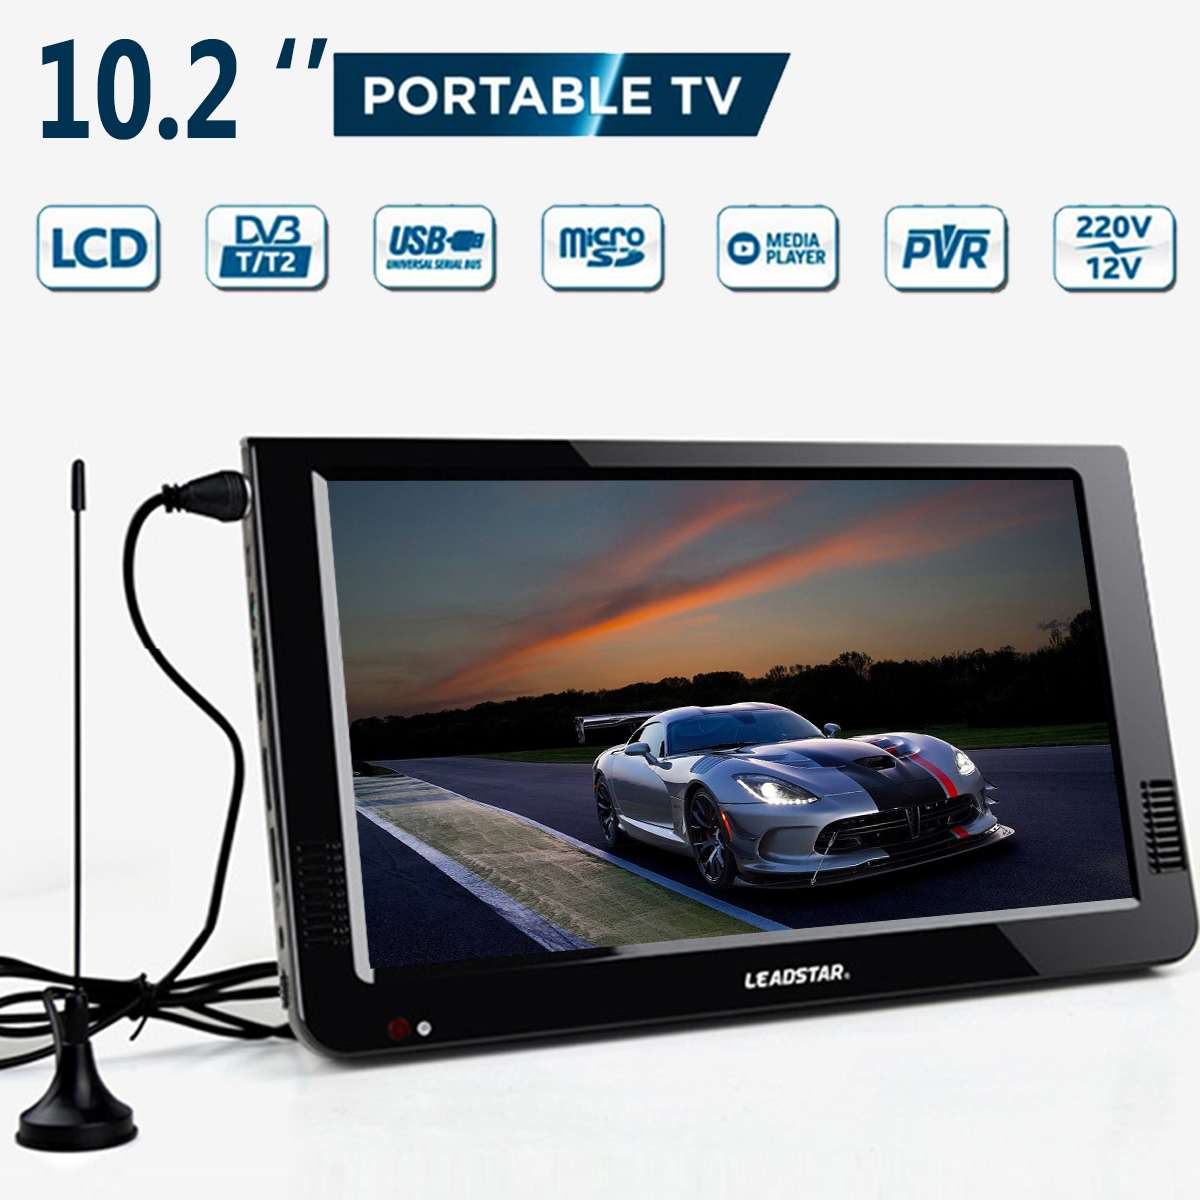 Portable <font><b>Car</b></font> Television Outdoor <font><b>Car</b></font> 16:9 Digital Analog Television DVB-T / DVB-T2 TFT 10.2'' LED-LCD HD <font><b>TV</b></font> Support TF Card Audio image